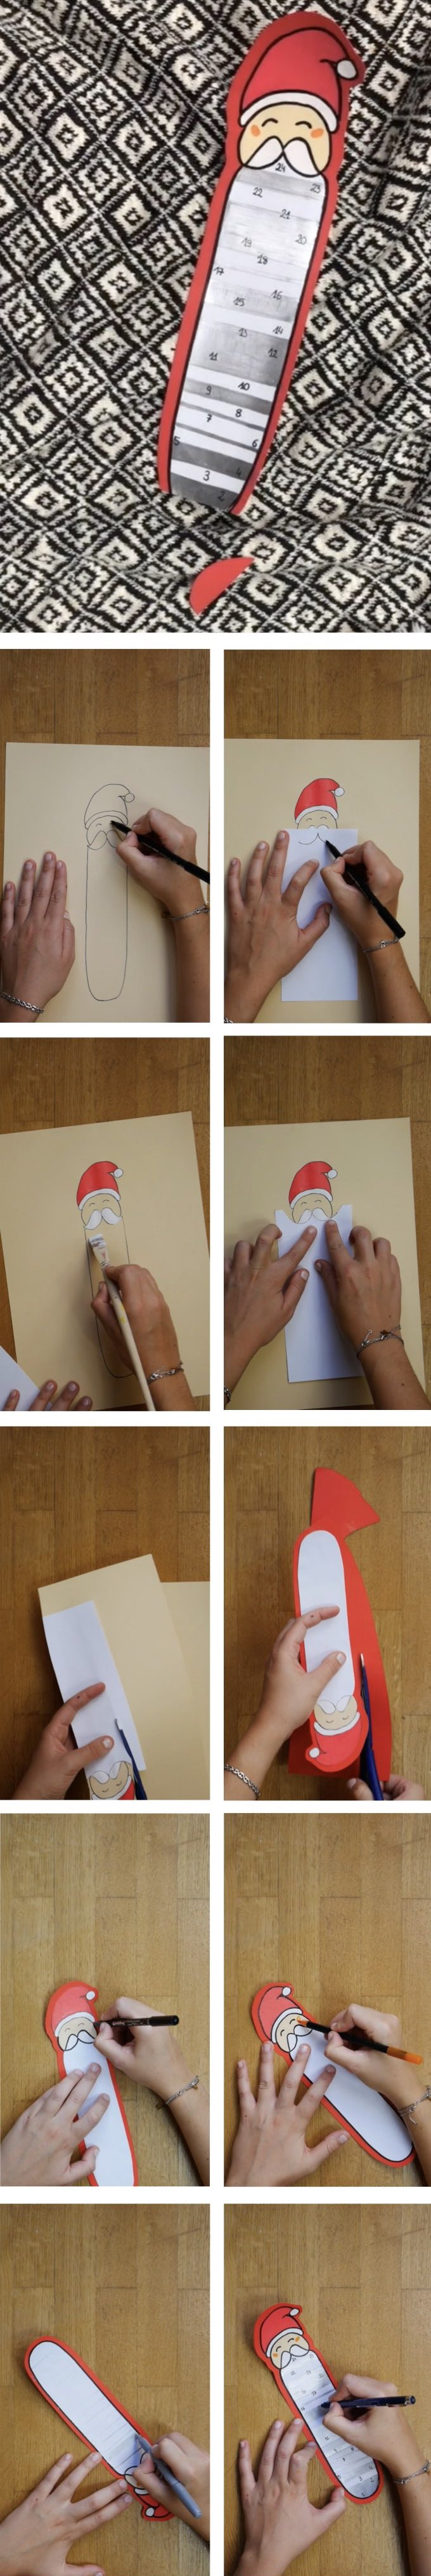 calendrier avent diy barbe du père noël à découper papier diy blog déco clem around the corner